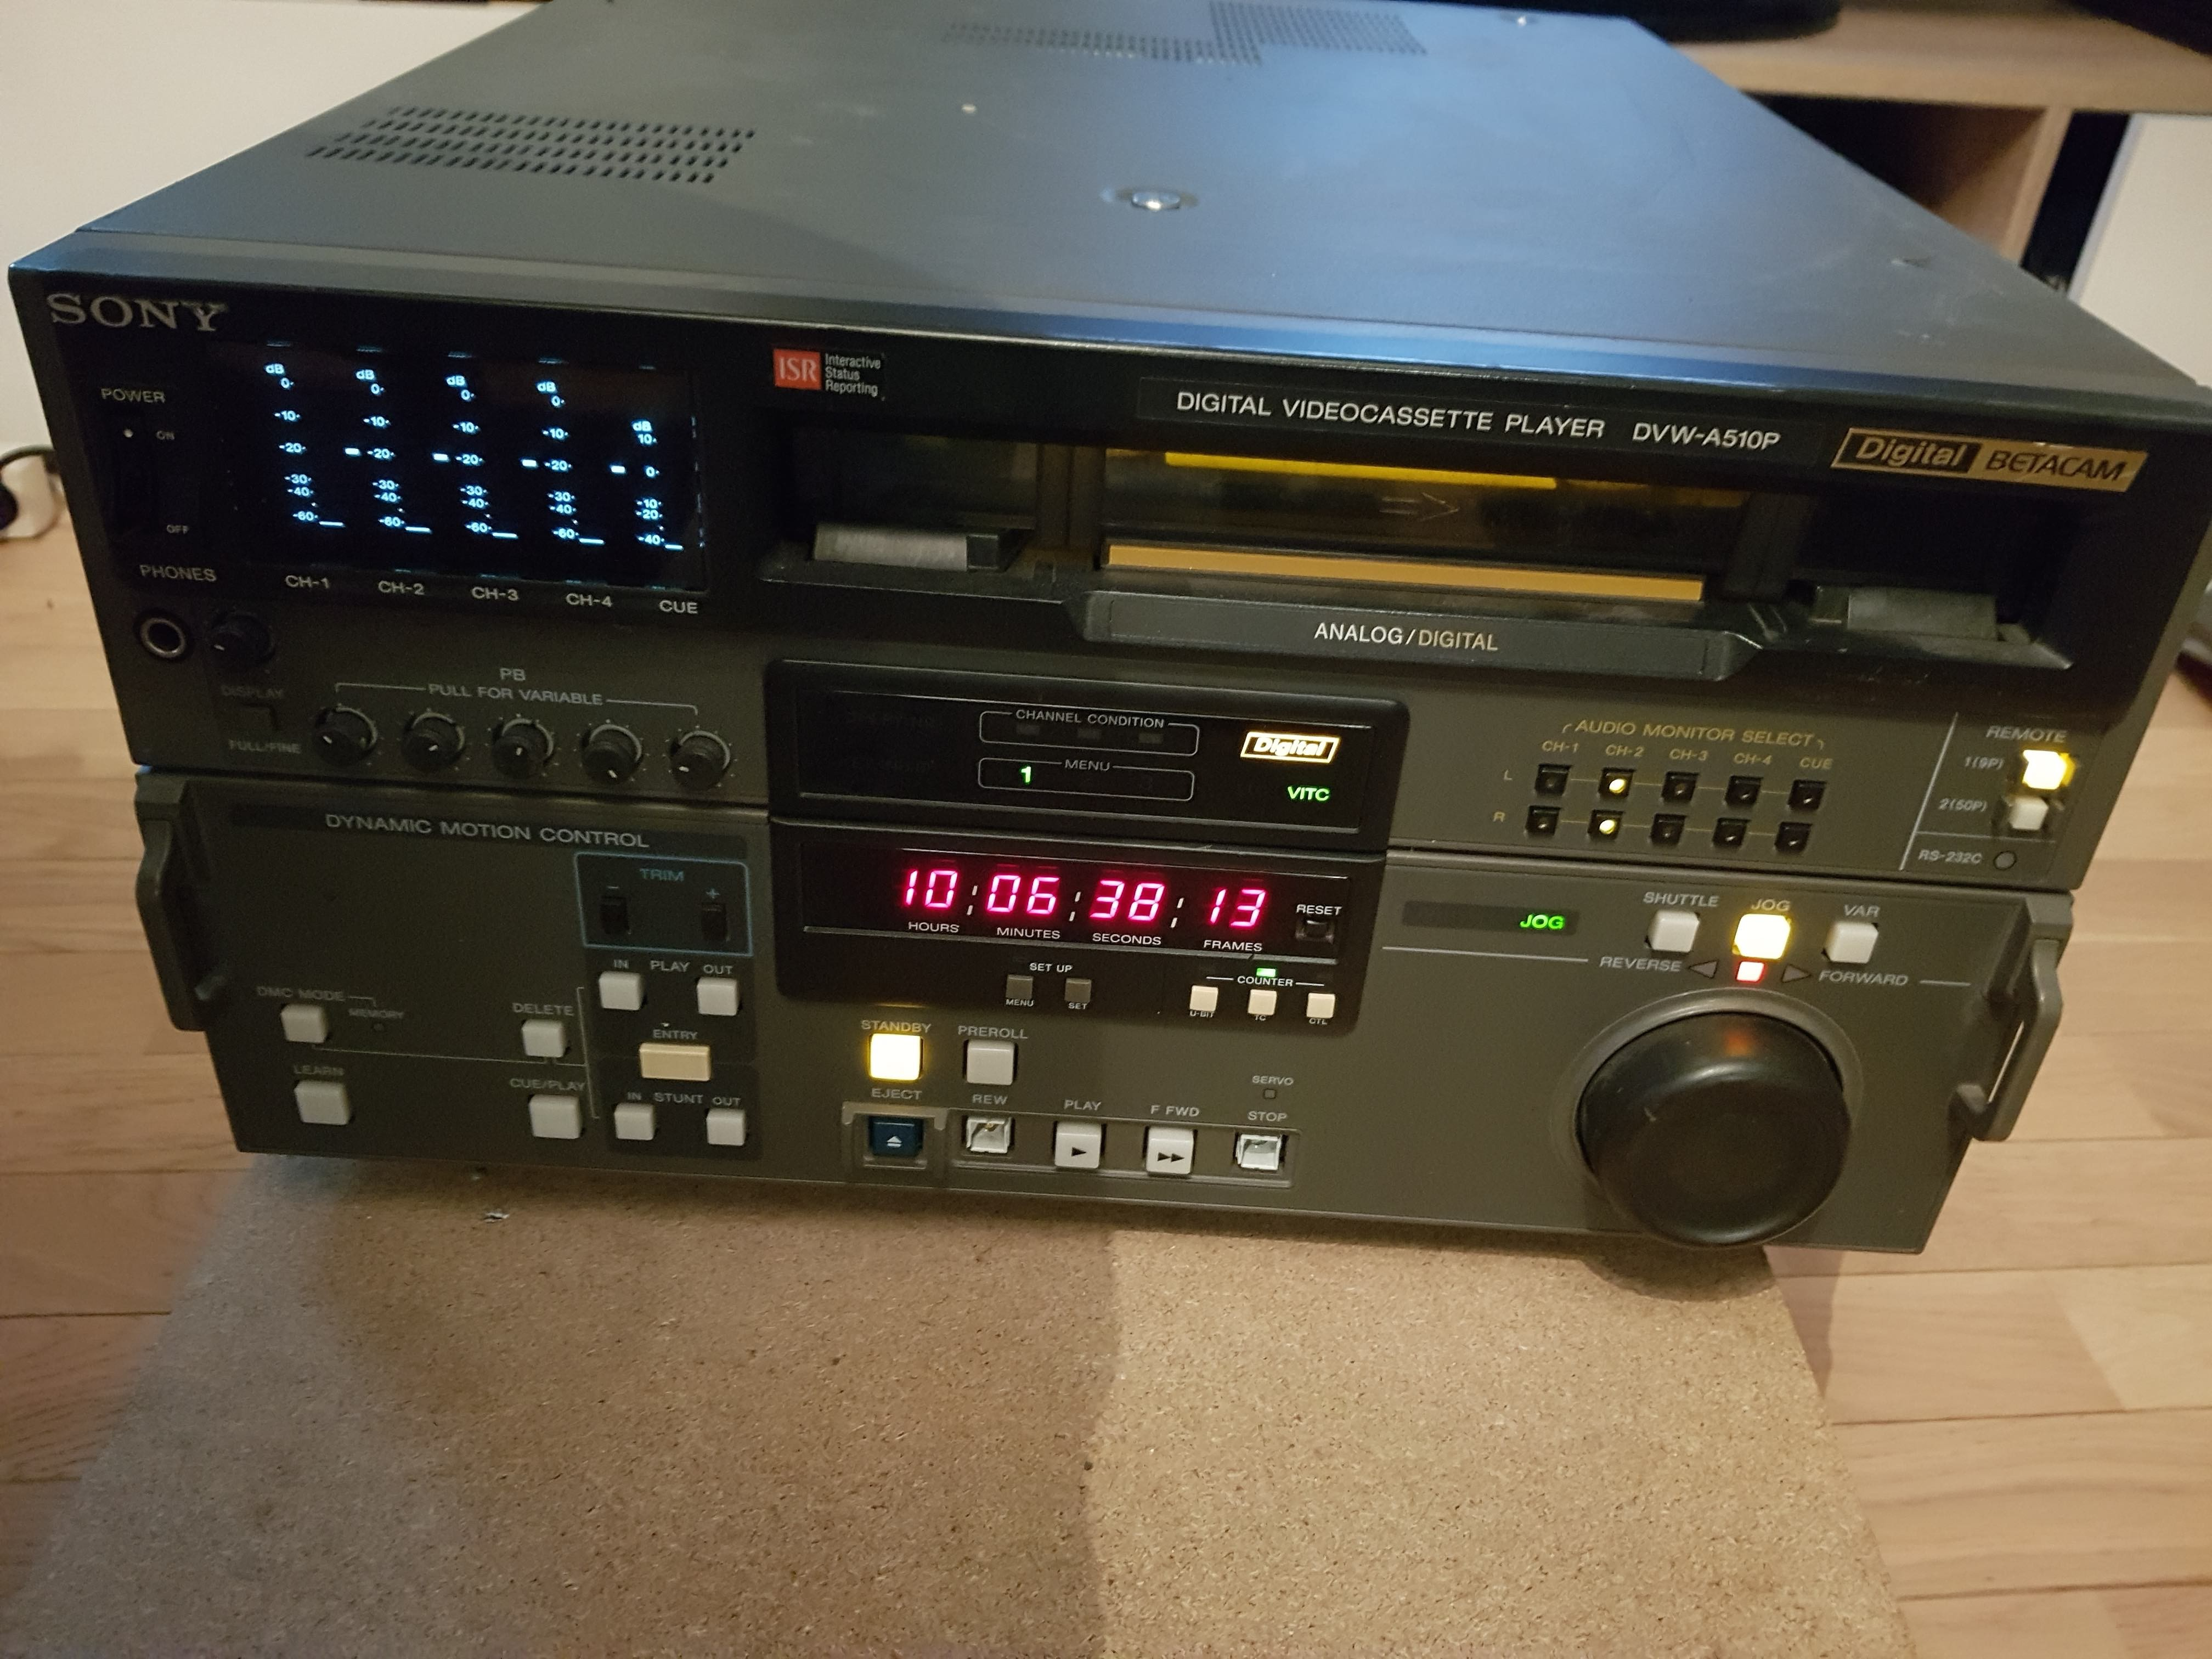 DIGITAL BETACAM SONY DVW-510P PLAYER